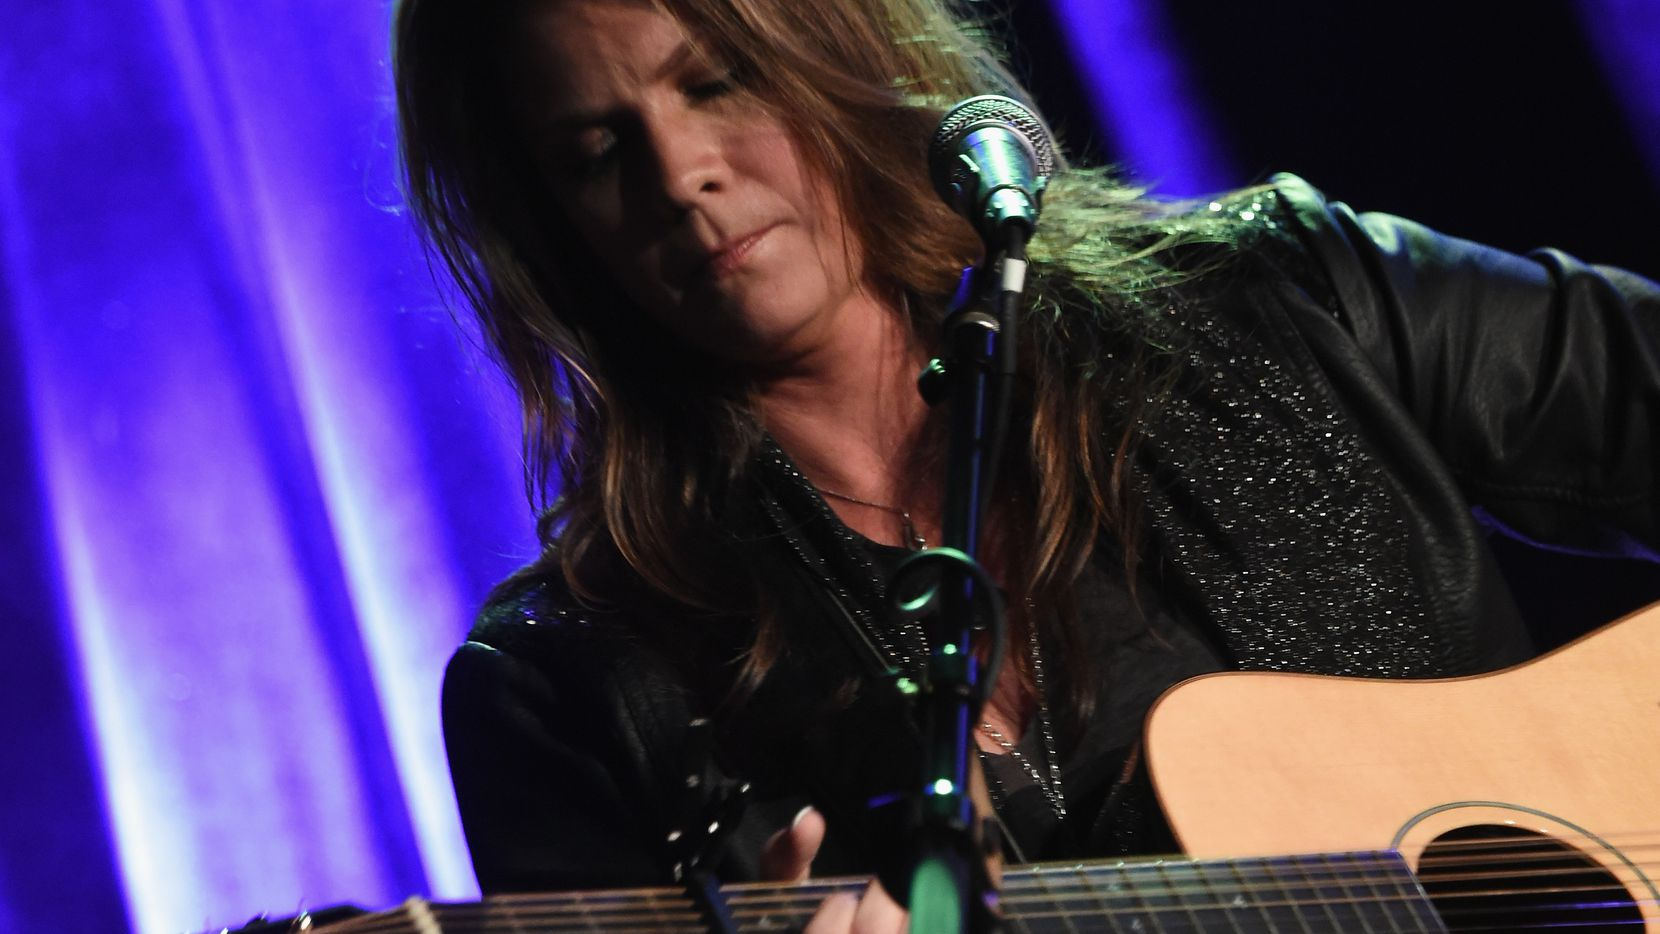 """NASHVILLE, TN - NOVEMBER 10:  Bridgette Tatum performs during """"Songwriters 4 Songwriters - Ladies' Night"""" A fundraiser to benefit The Pen Fund at 3rd and Lindsley on November 10, 2015 in Nashville, Tennessee."""